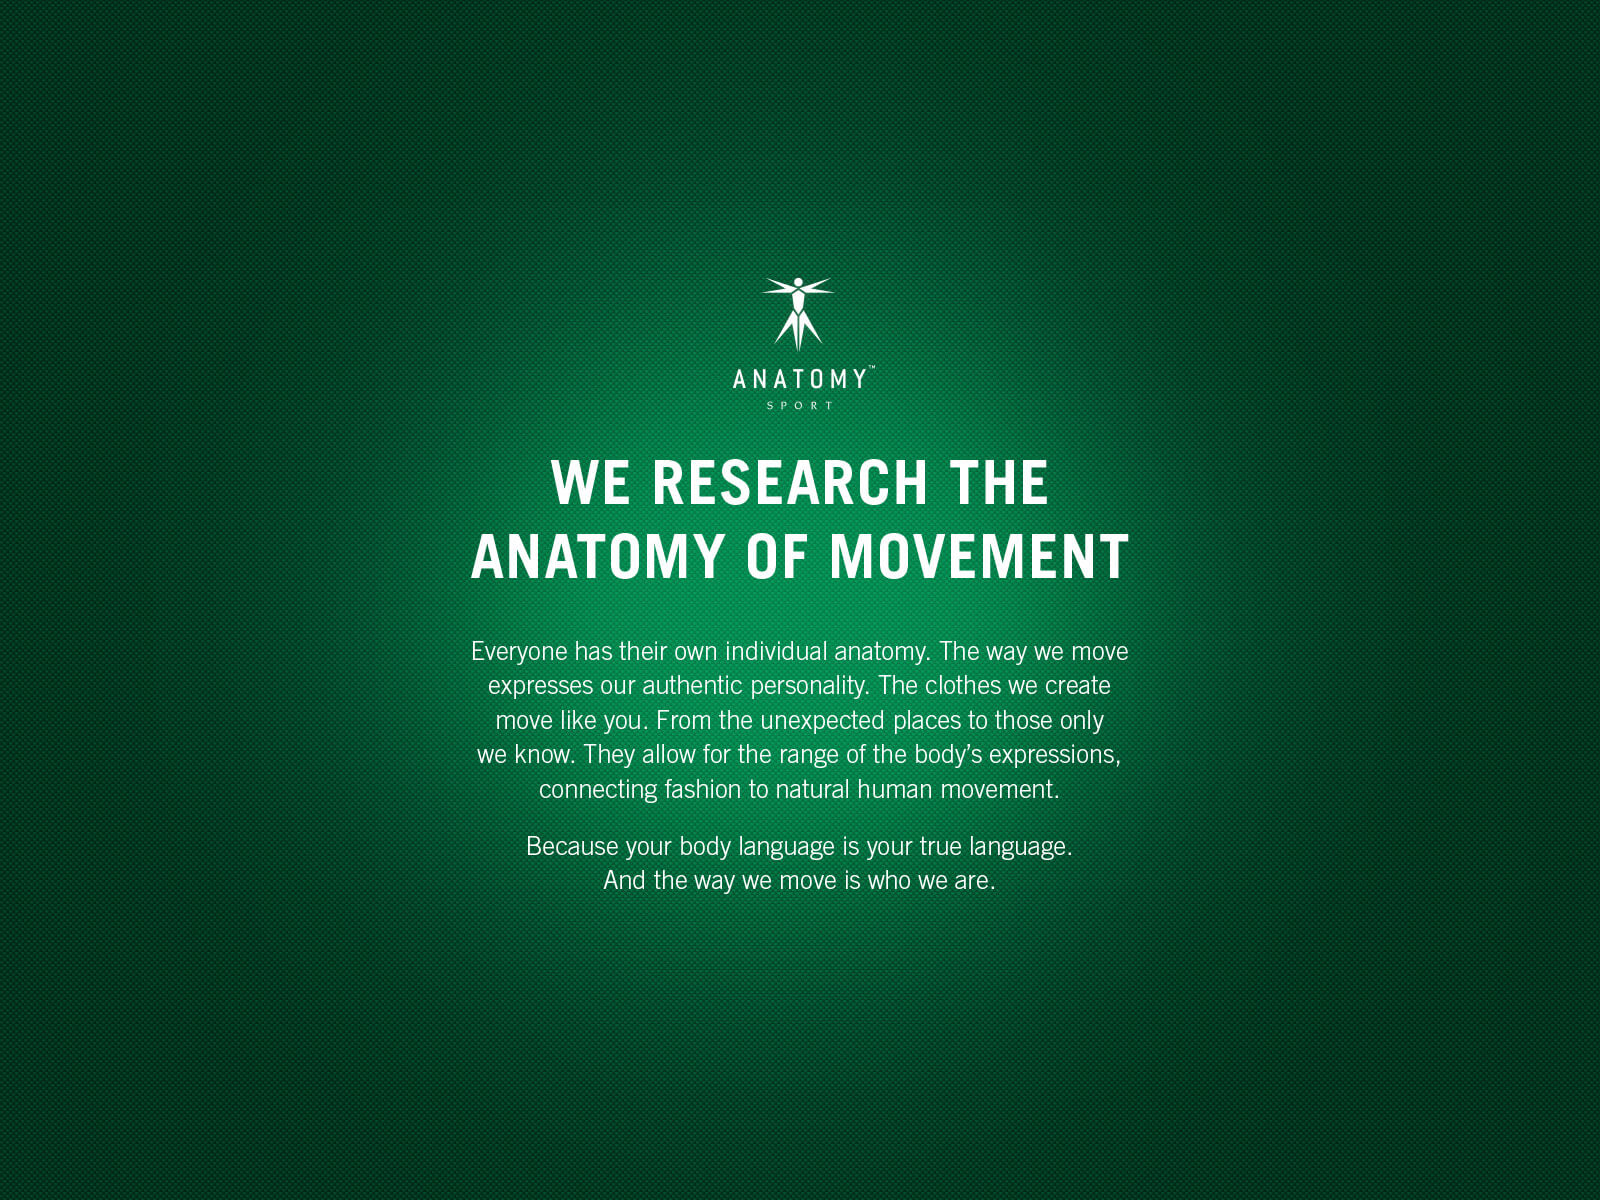 ANATOMY RESEARCH THE ANATOMY OF MOVEMENT | Oi!